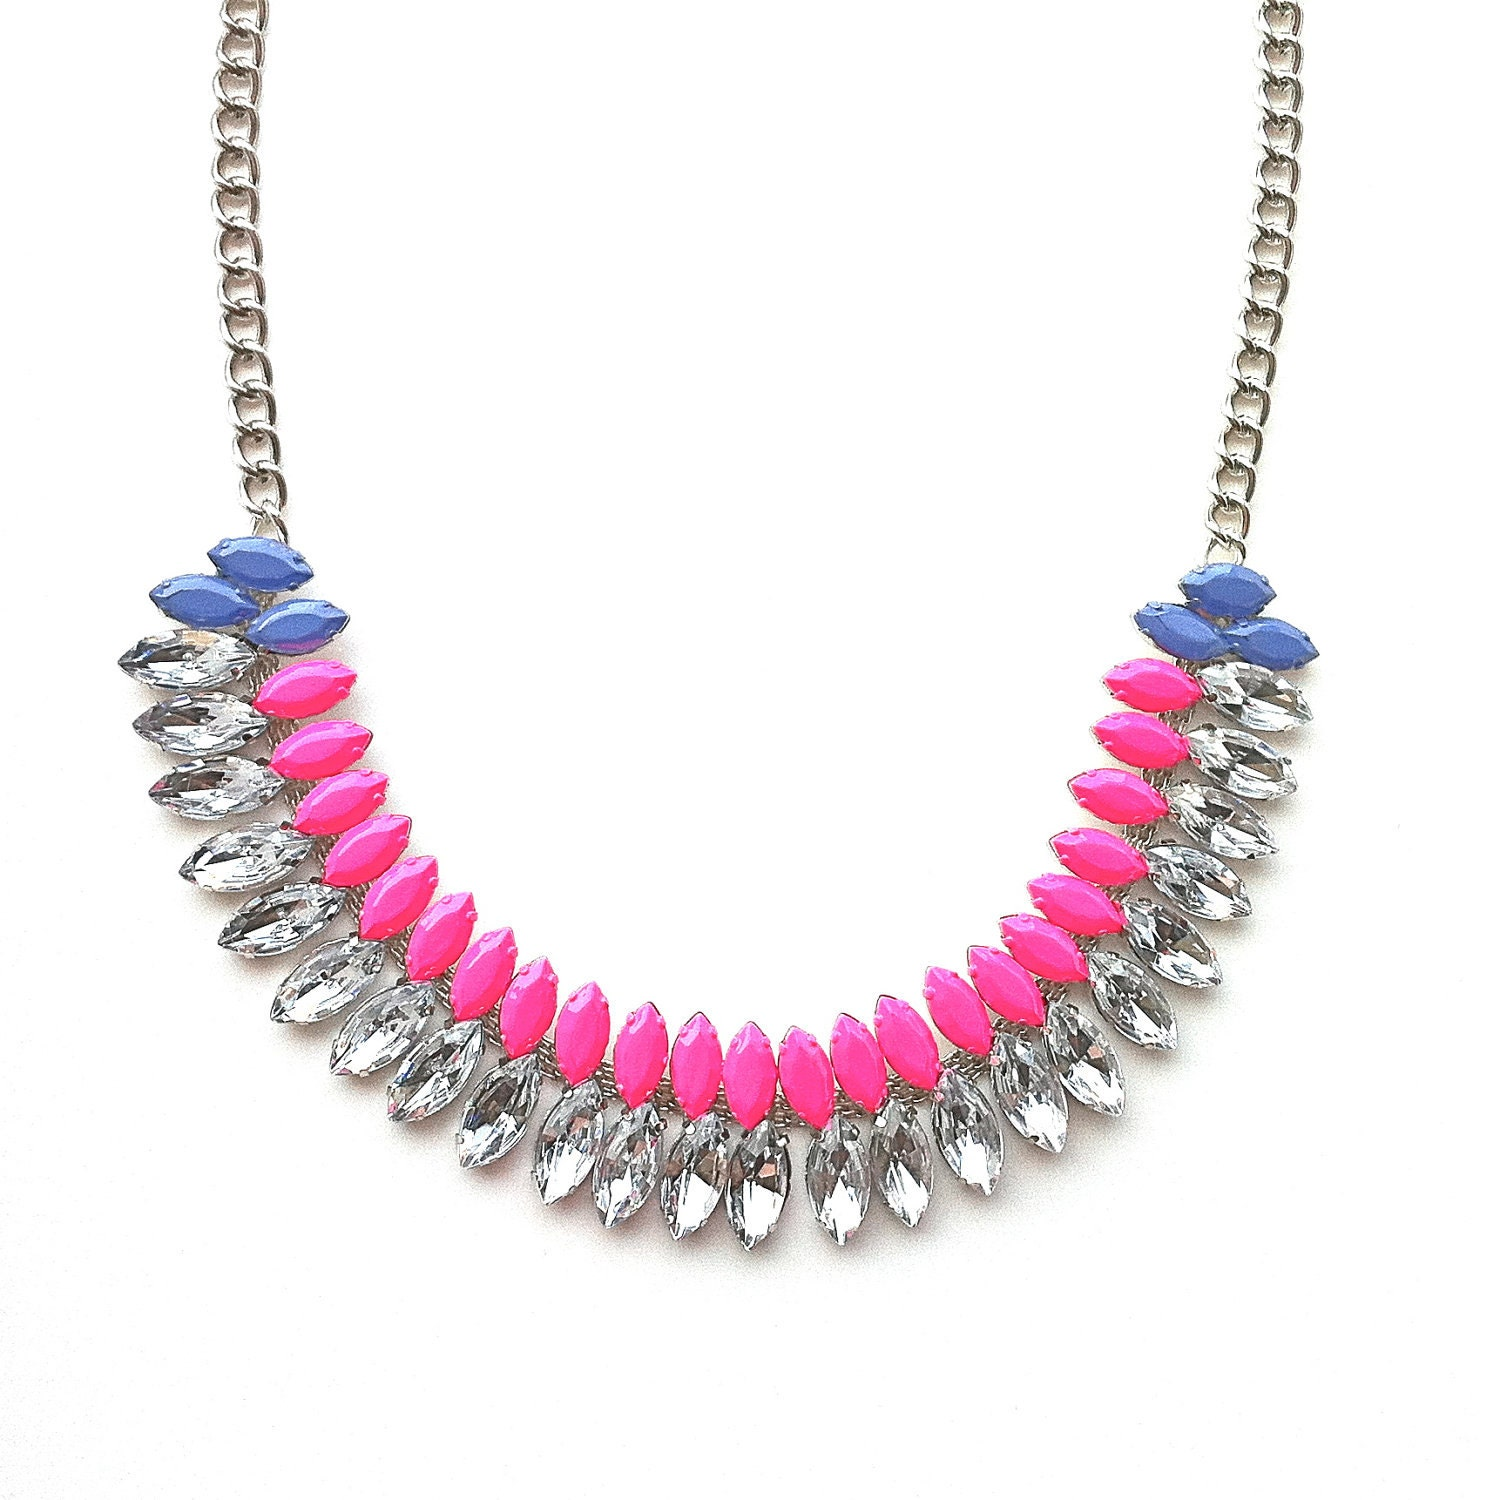 Neon Pink and Periwinkle Hand-painted Crystal Necklace